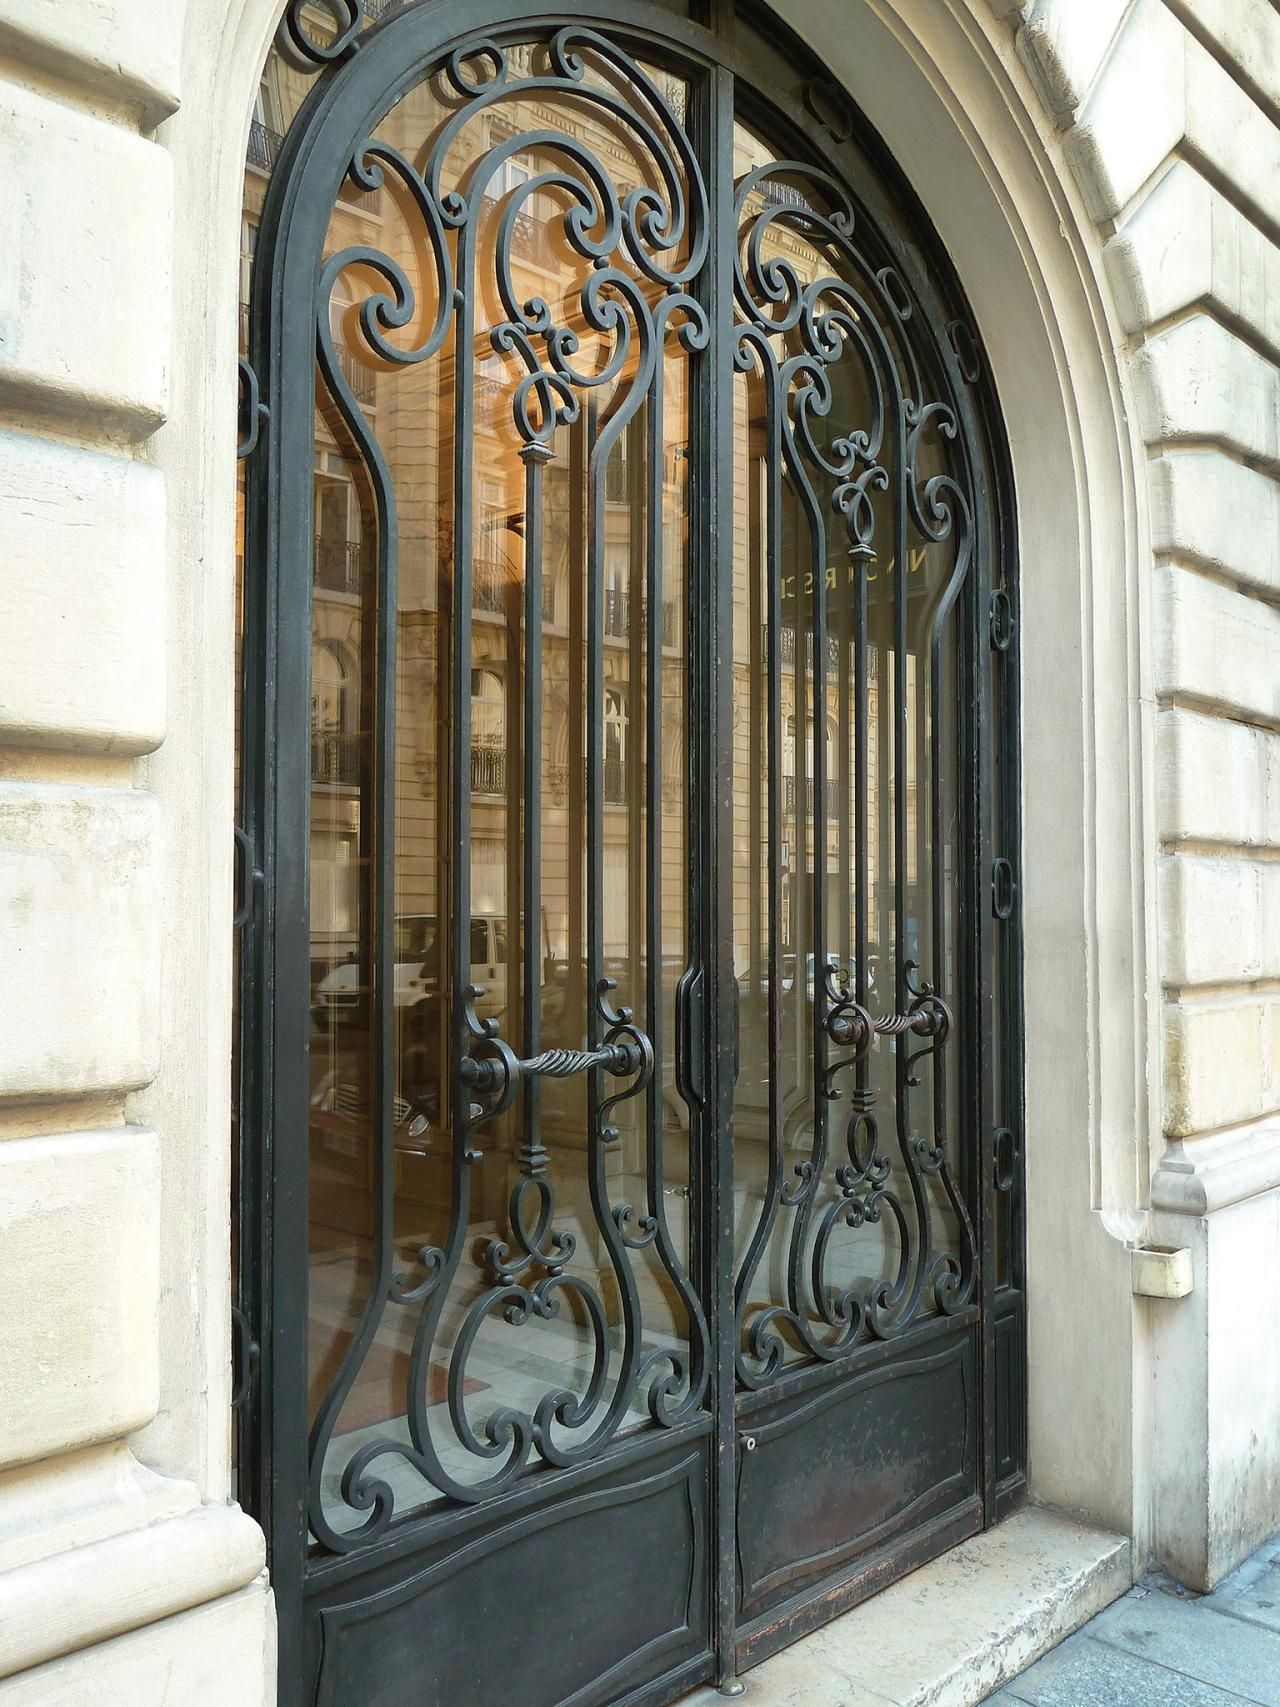 CI Allure Of French And Italian Decor_Hand Forged Iron Gate Pg210_3x4.rend.hgtvcom.1280.1707.jpeg  (1280×1707)